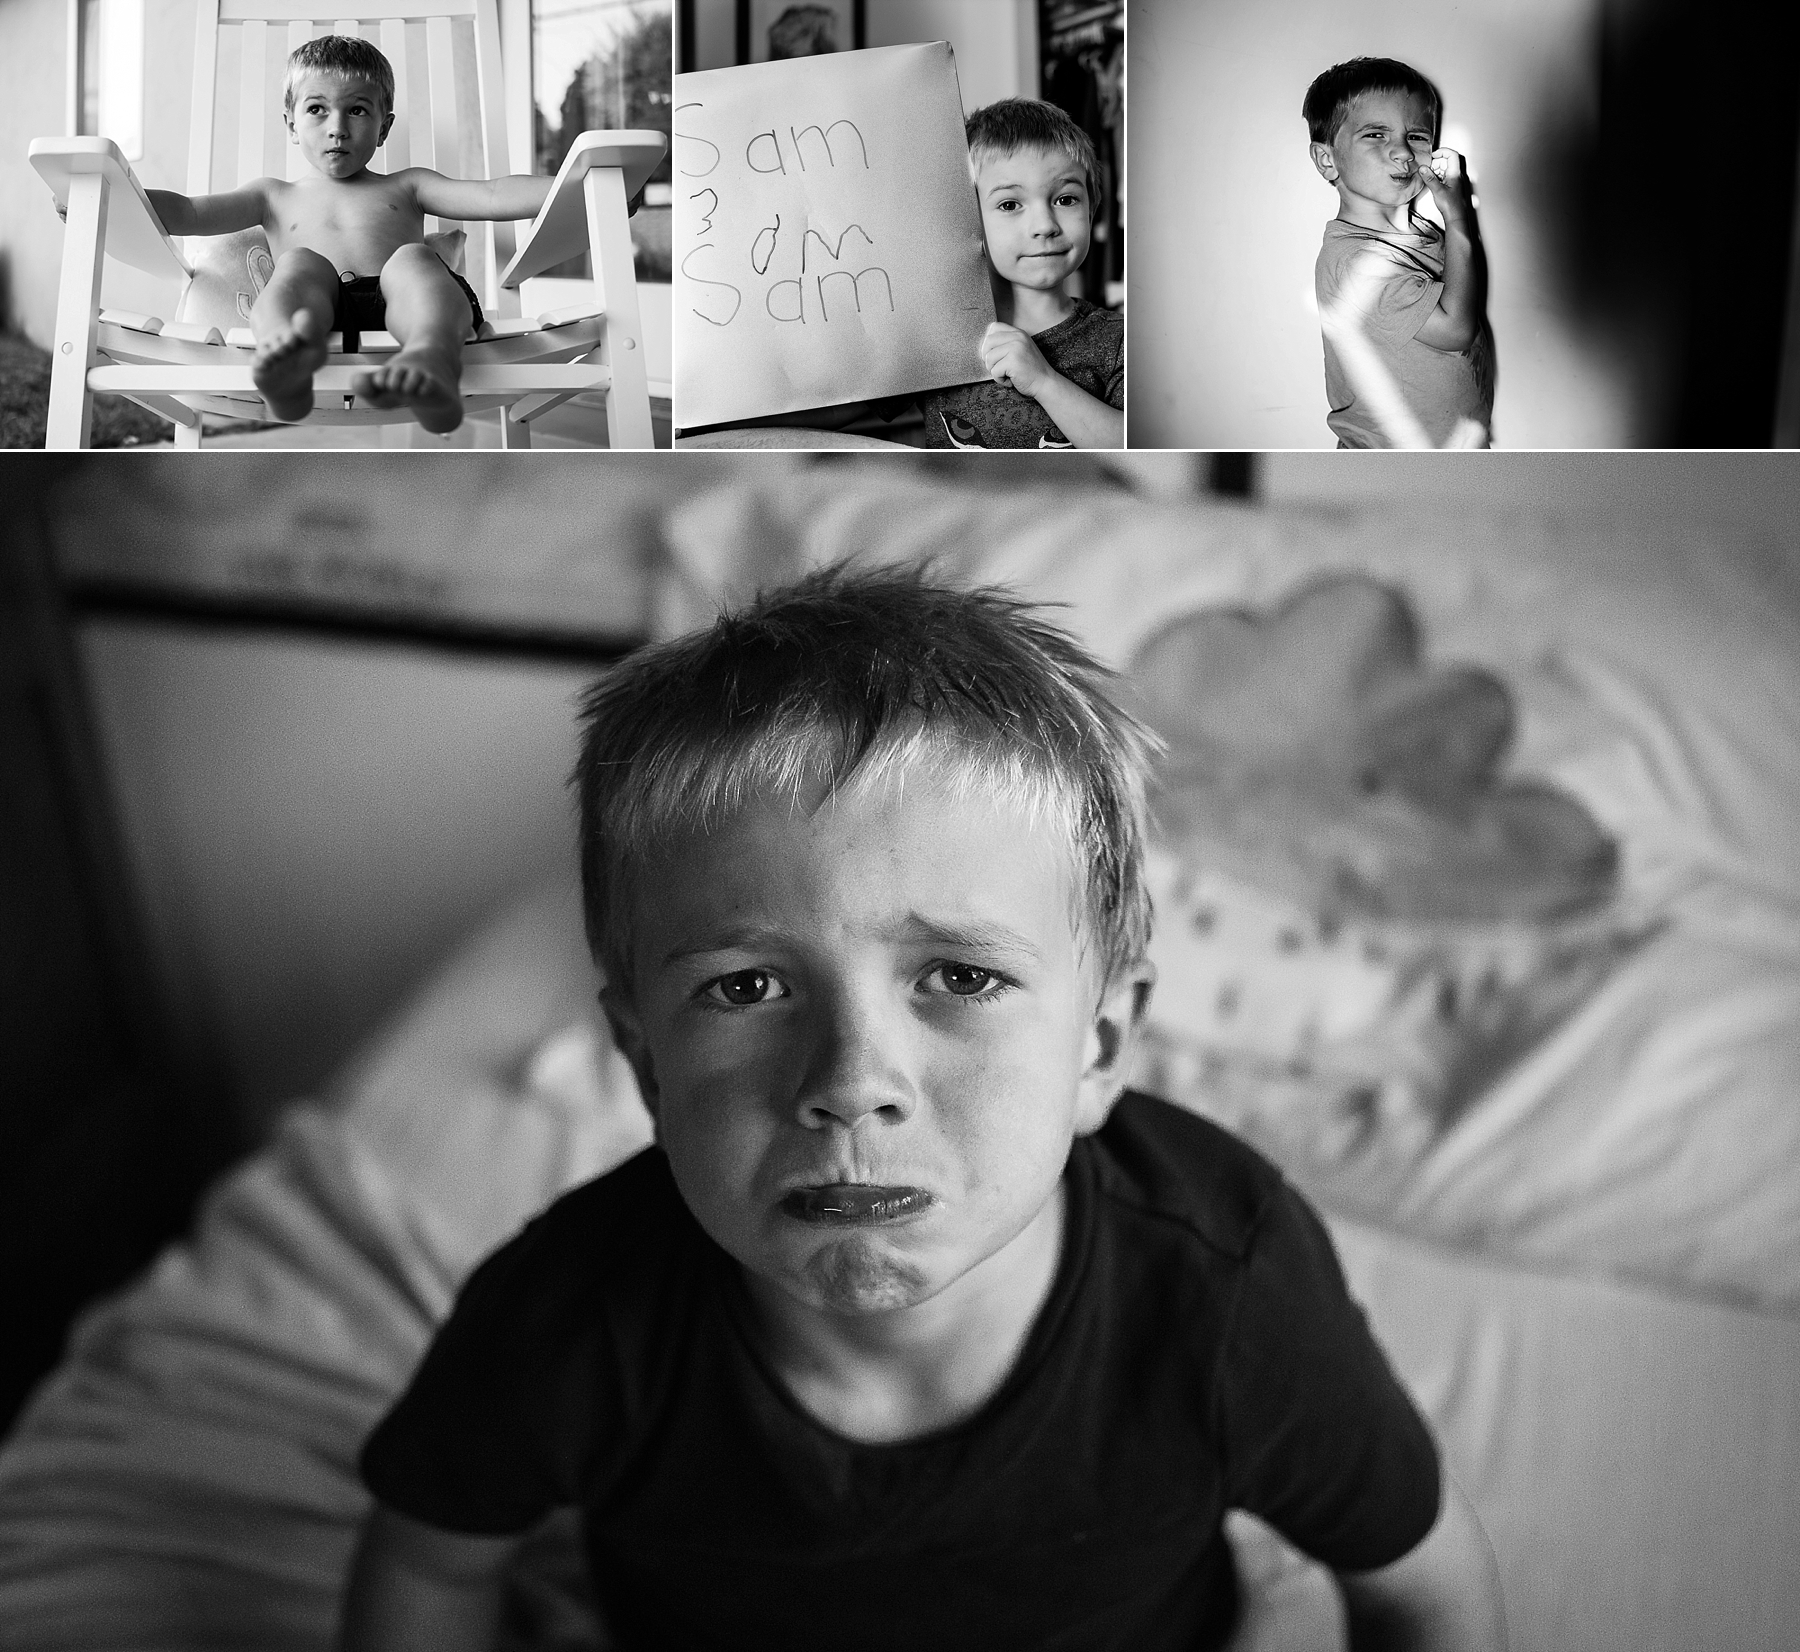 A black and white environmental portrait of my boy shows the emotion on his face with the cloudy pillow behind him.